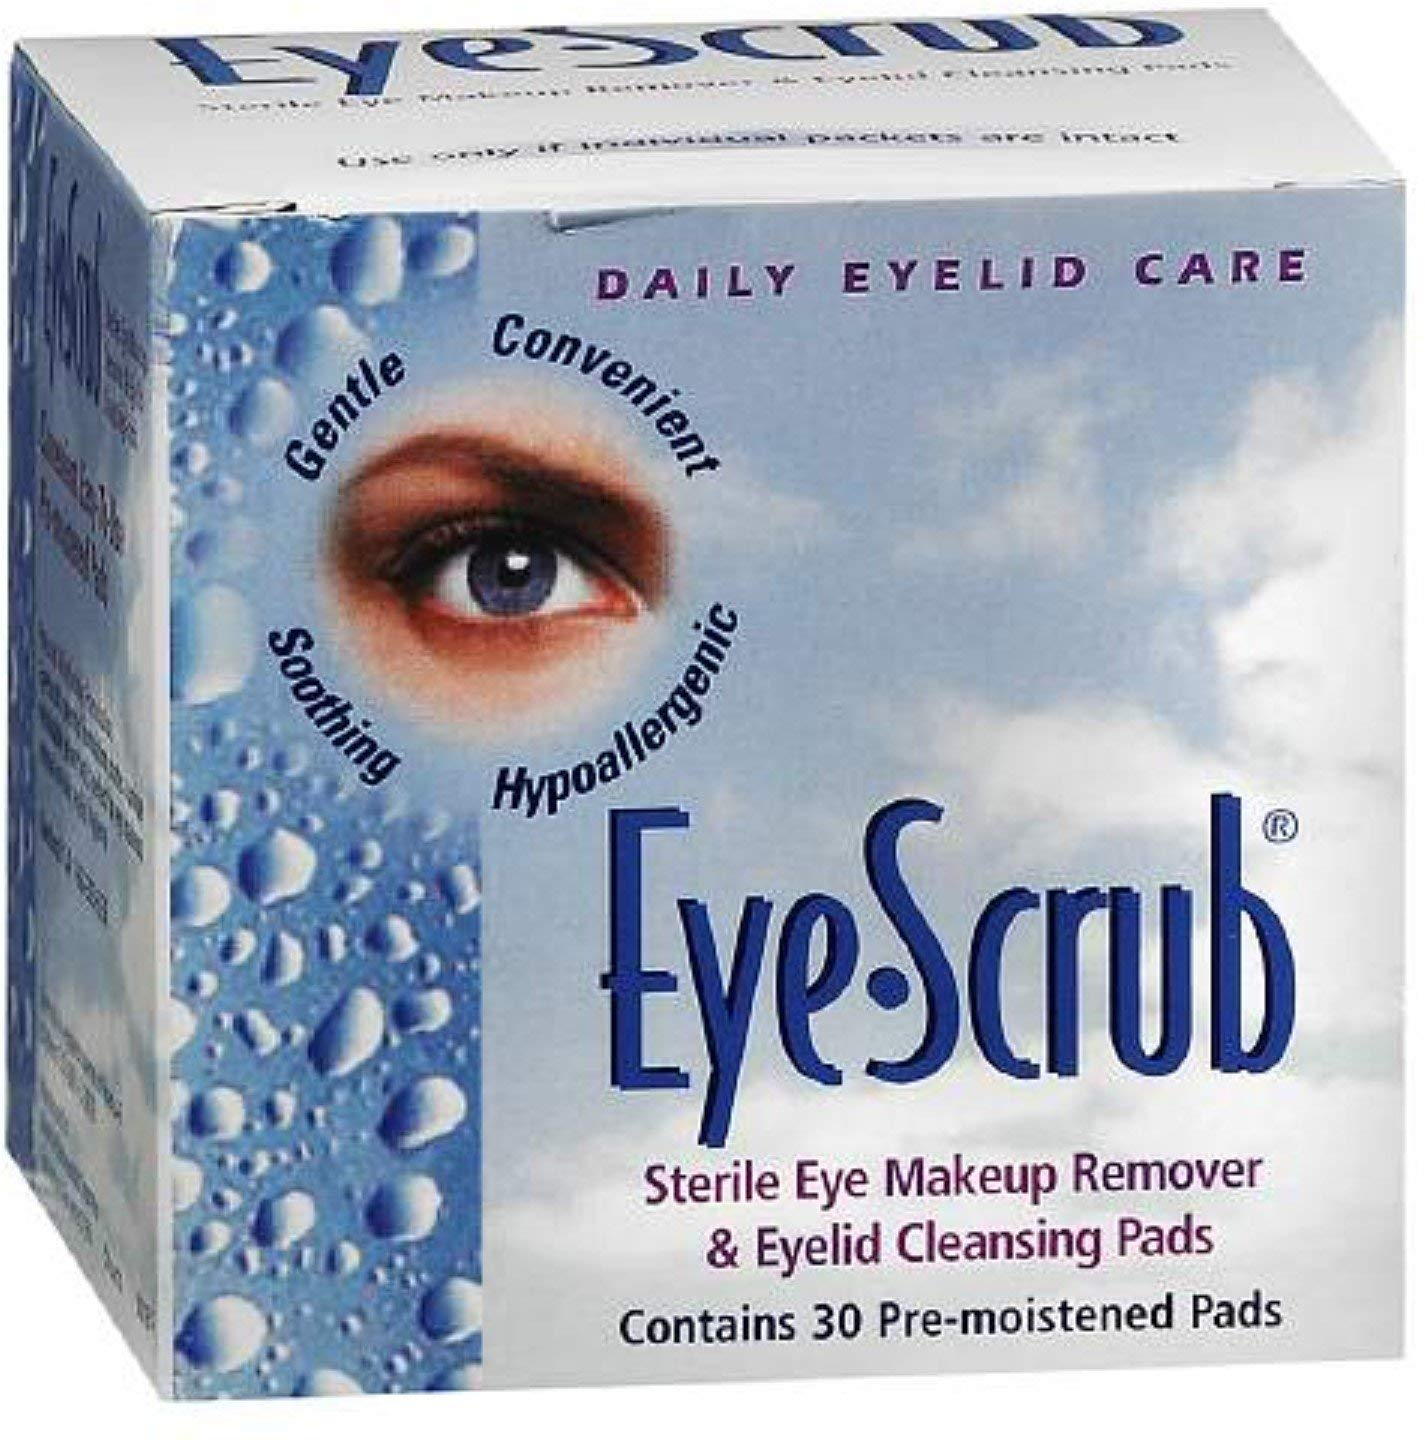 Eye Scrub Sterile Eye Makeup Remover & Eyelid Cleansing Pads 30 ea (Pack of 7)